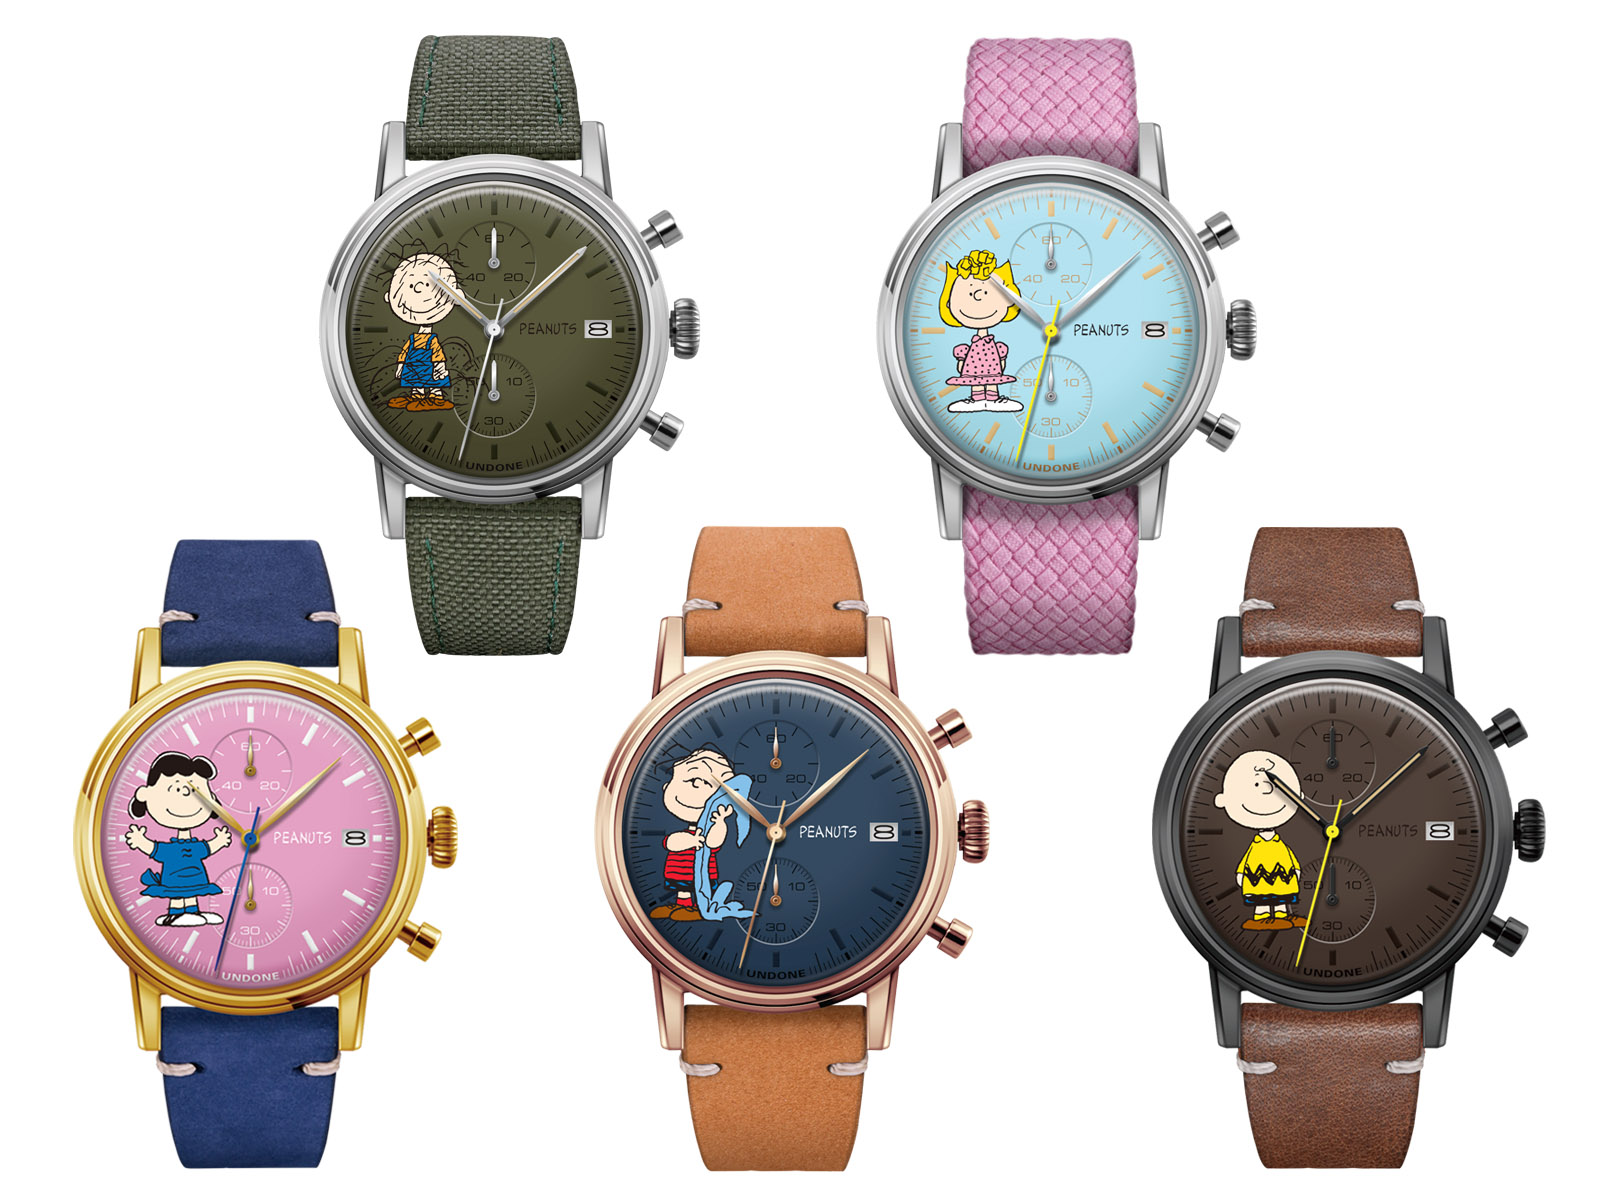 Undone Peanuts Urban One World Chronograph Custom examples